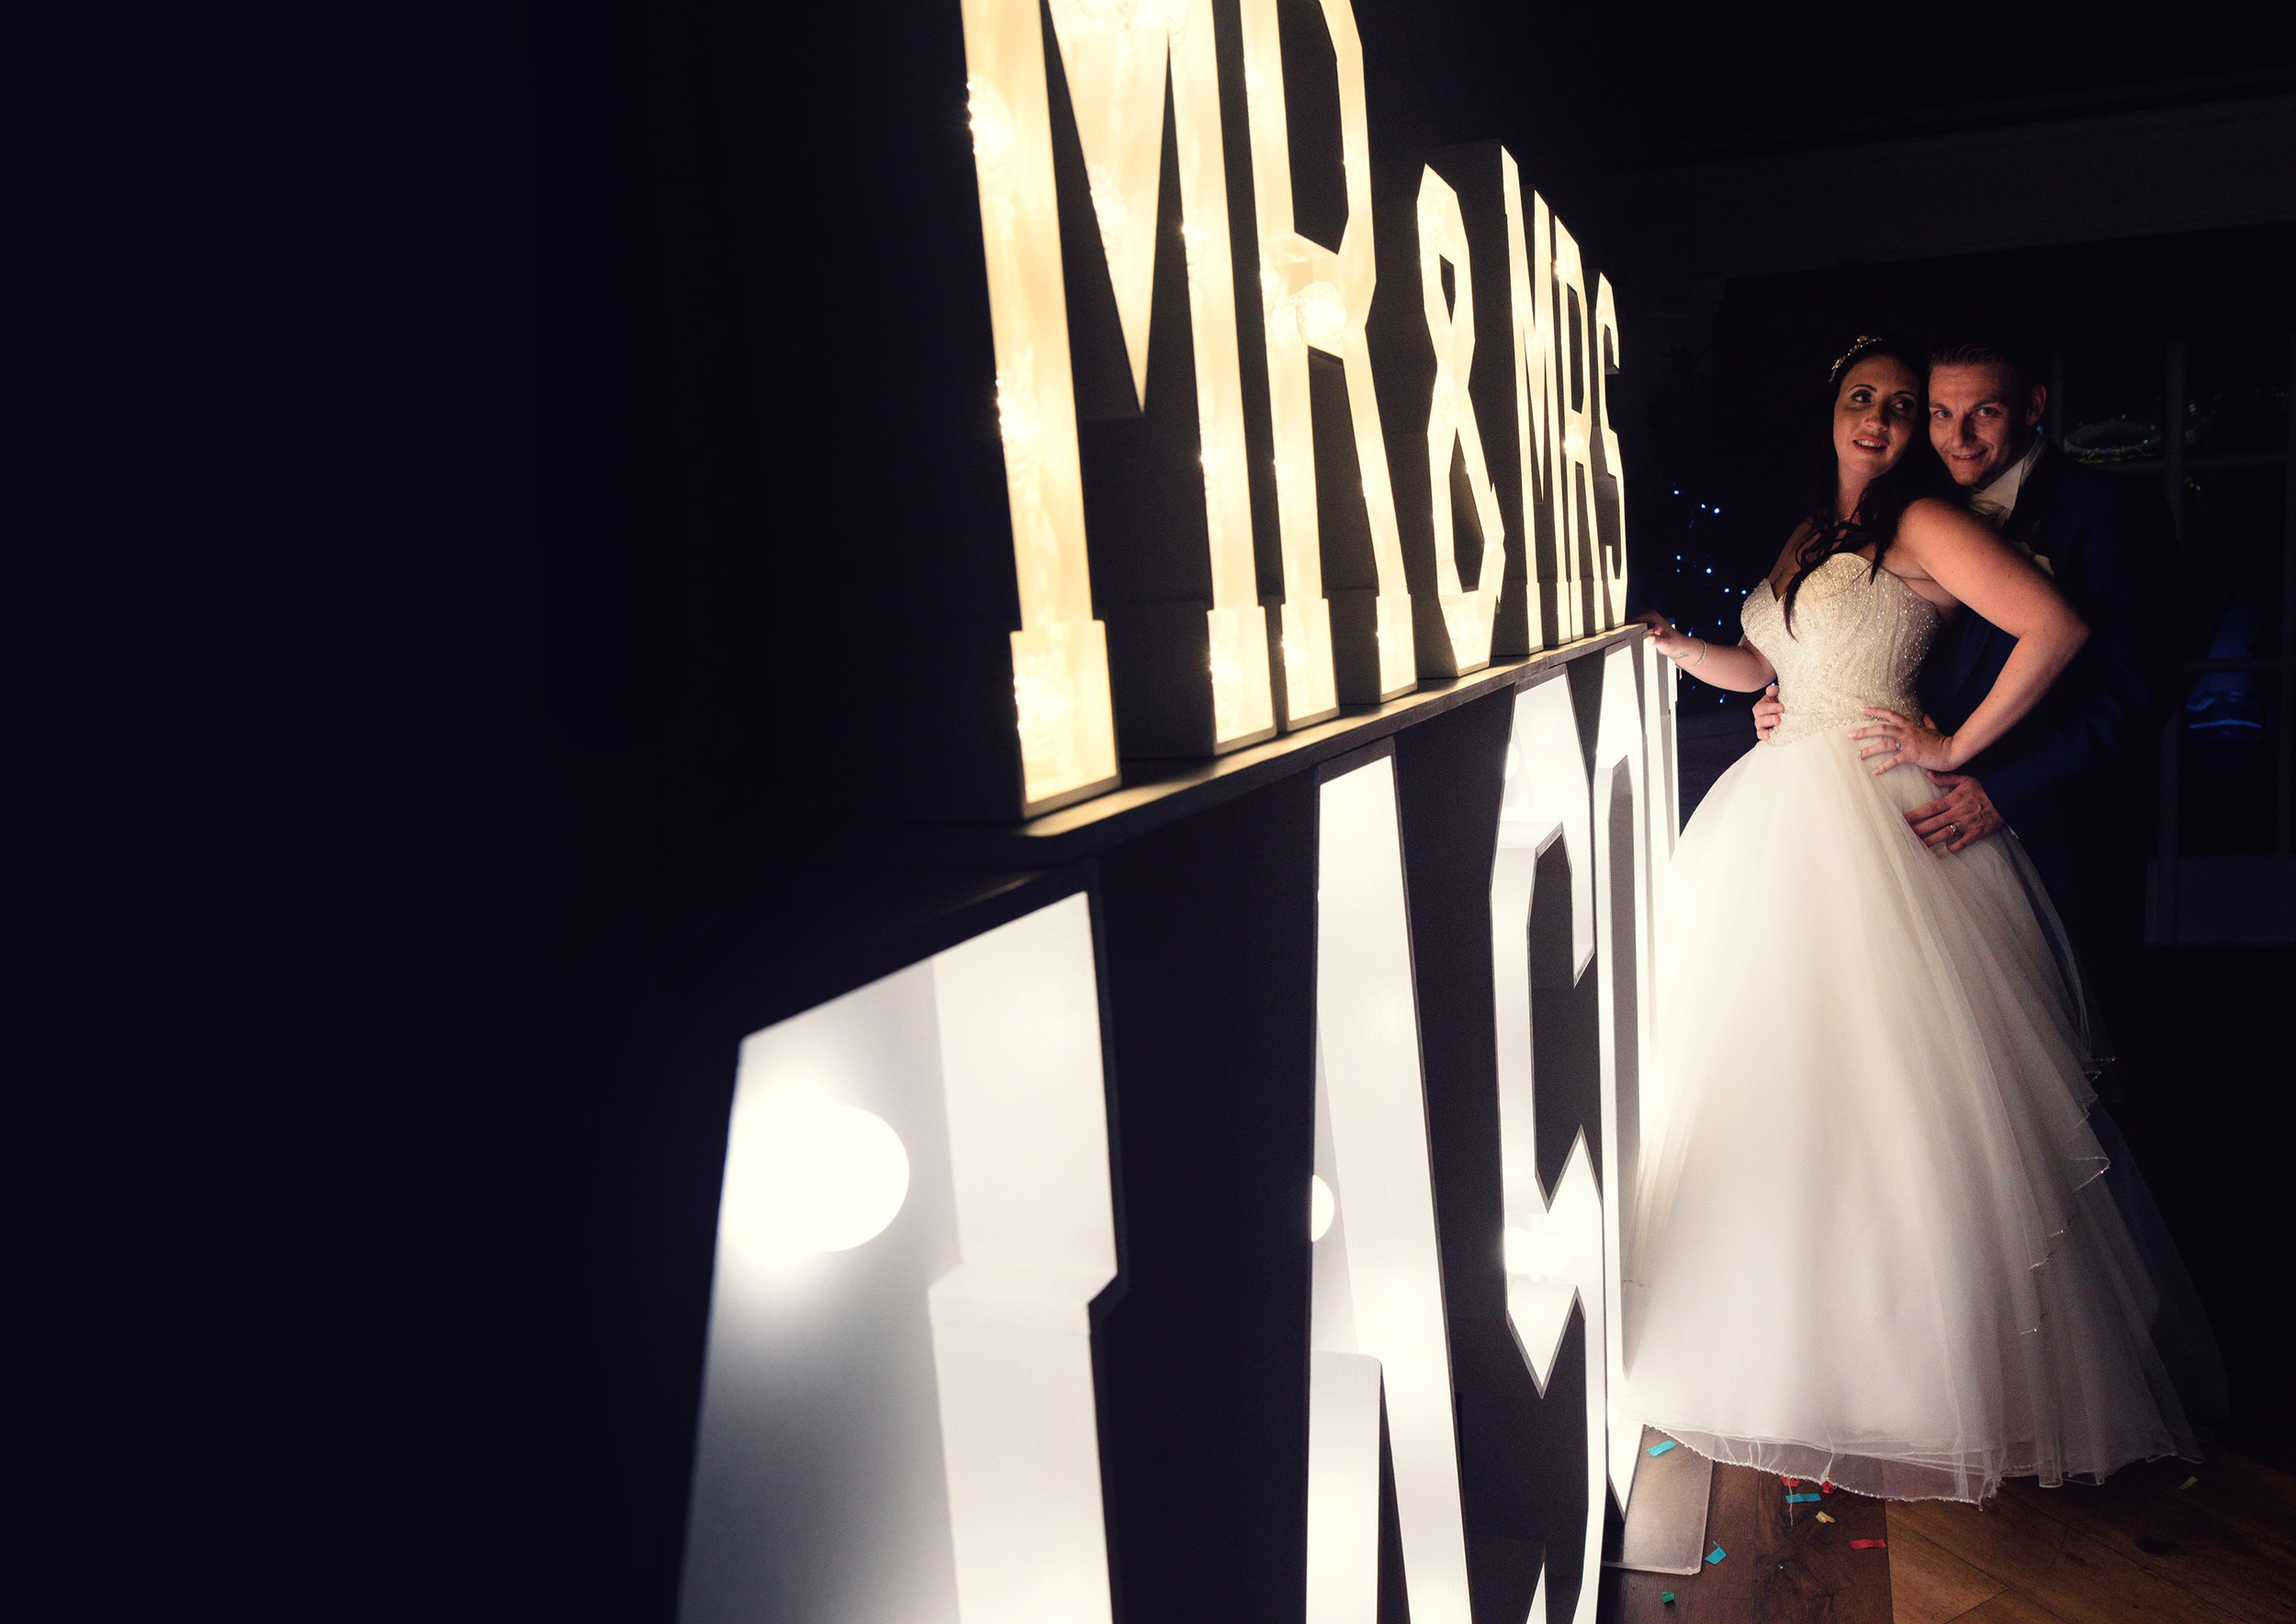 The bride and groom with their name in lights